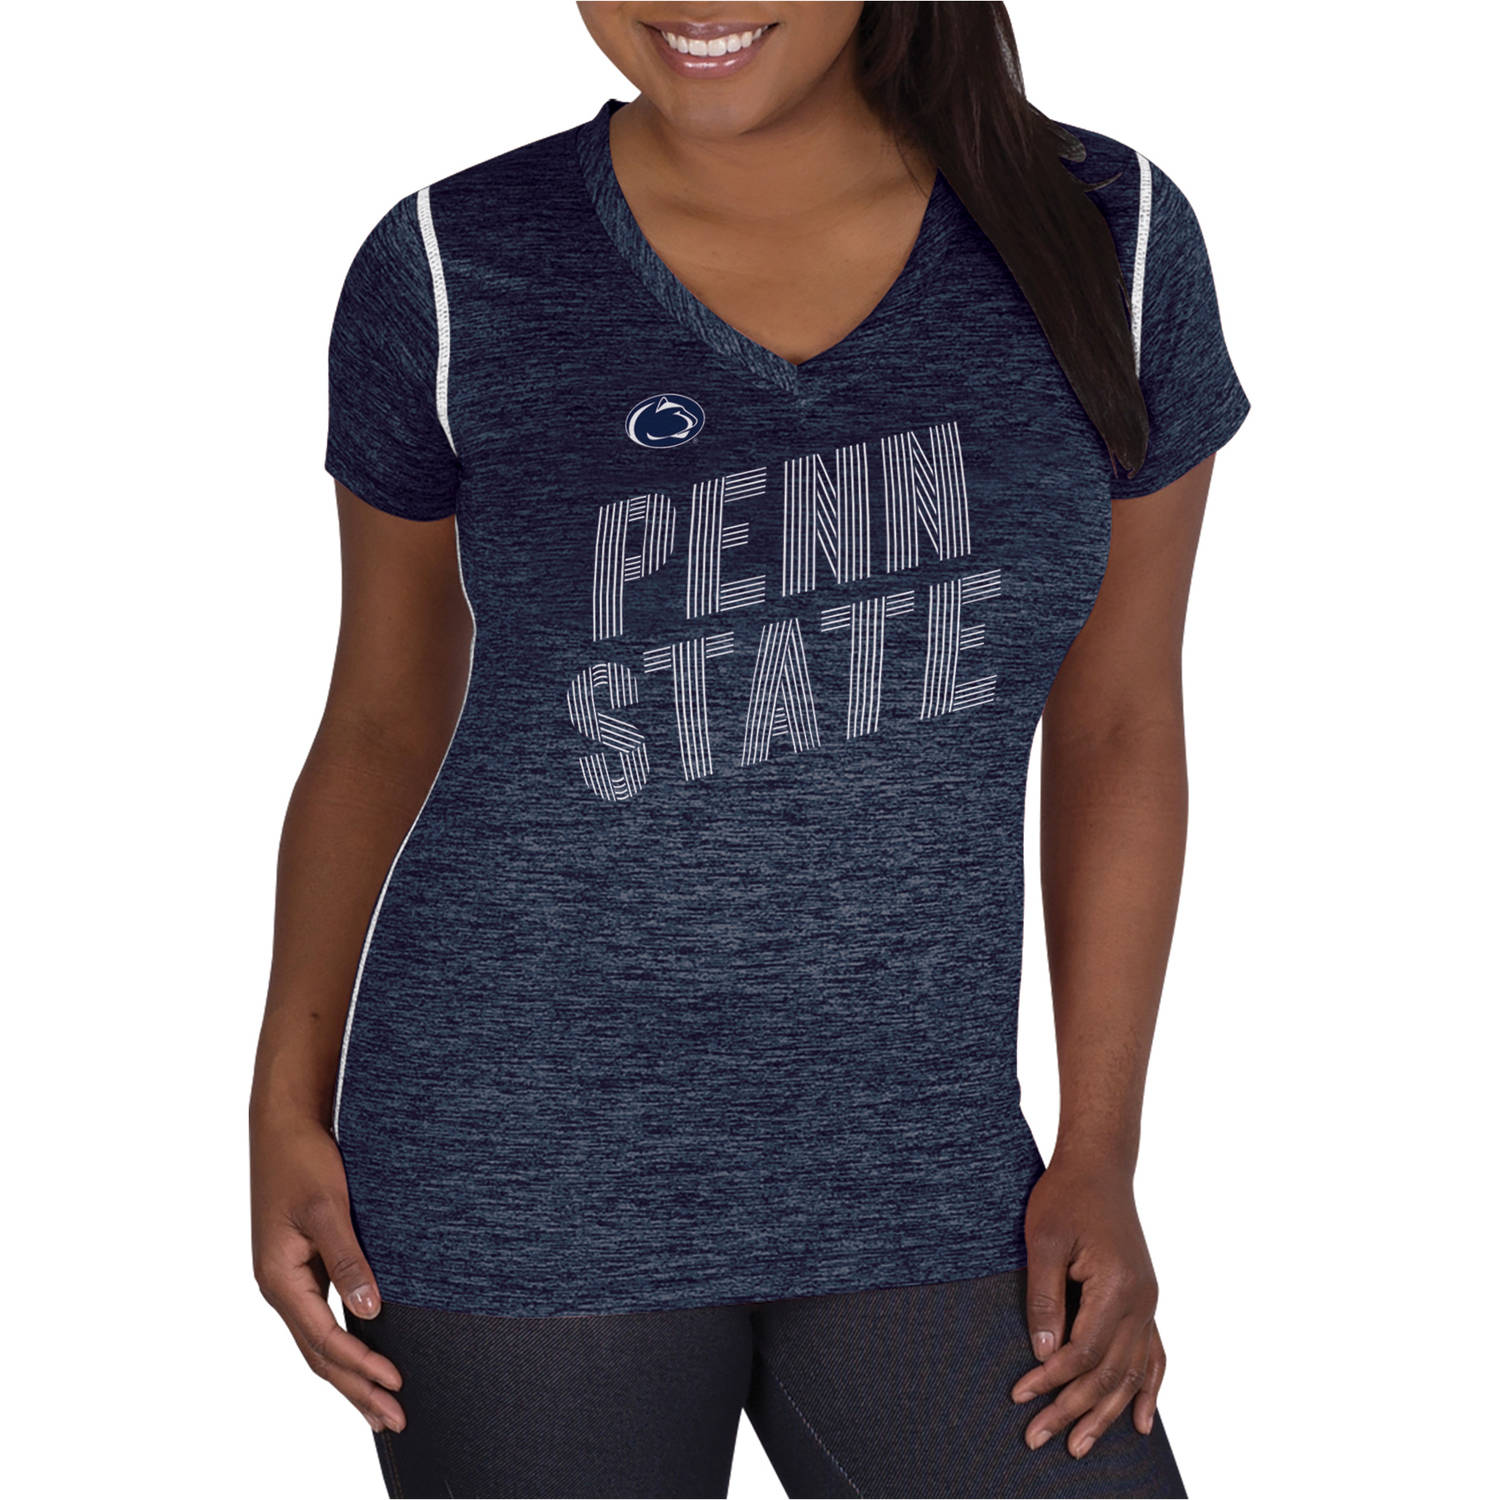 NCAA Penn State Nittany Lions Ladies Classic-Fit Synthetic V-Neck Tee